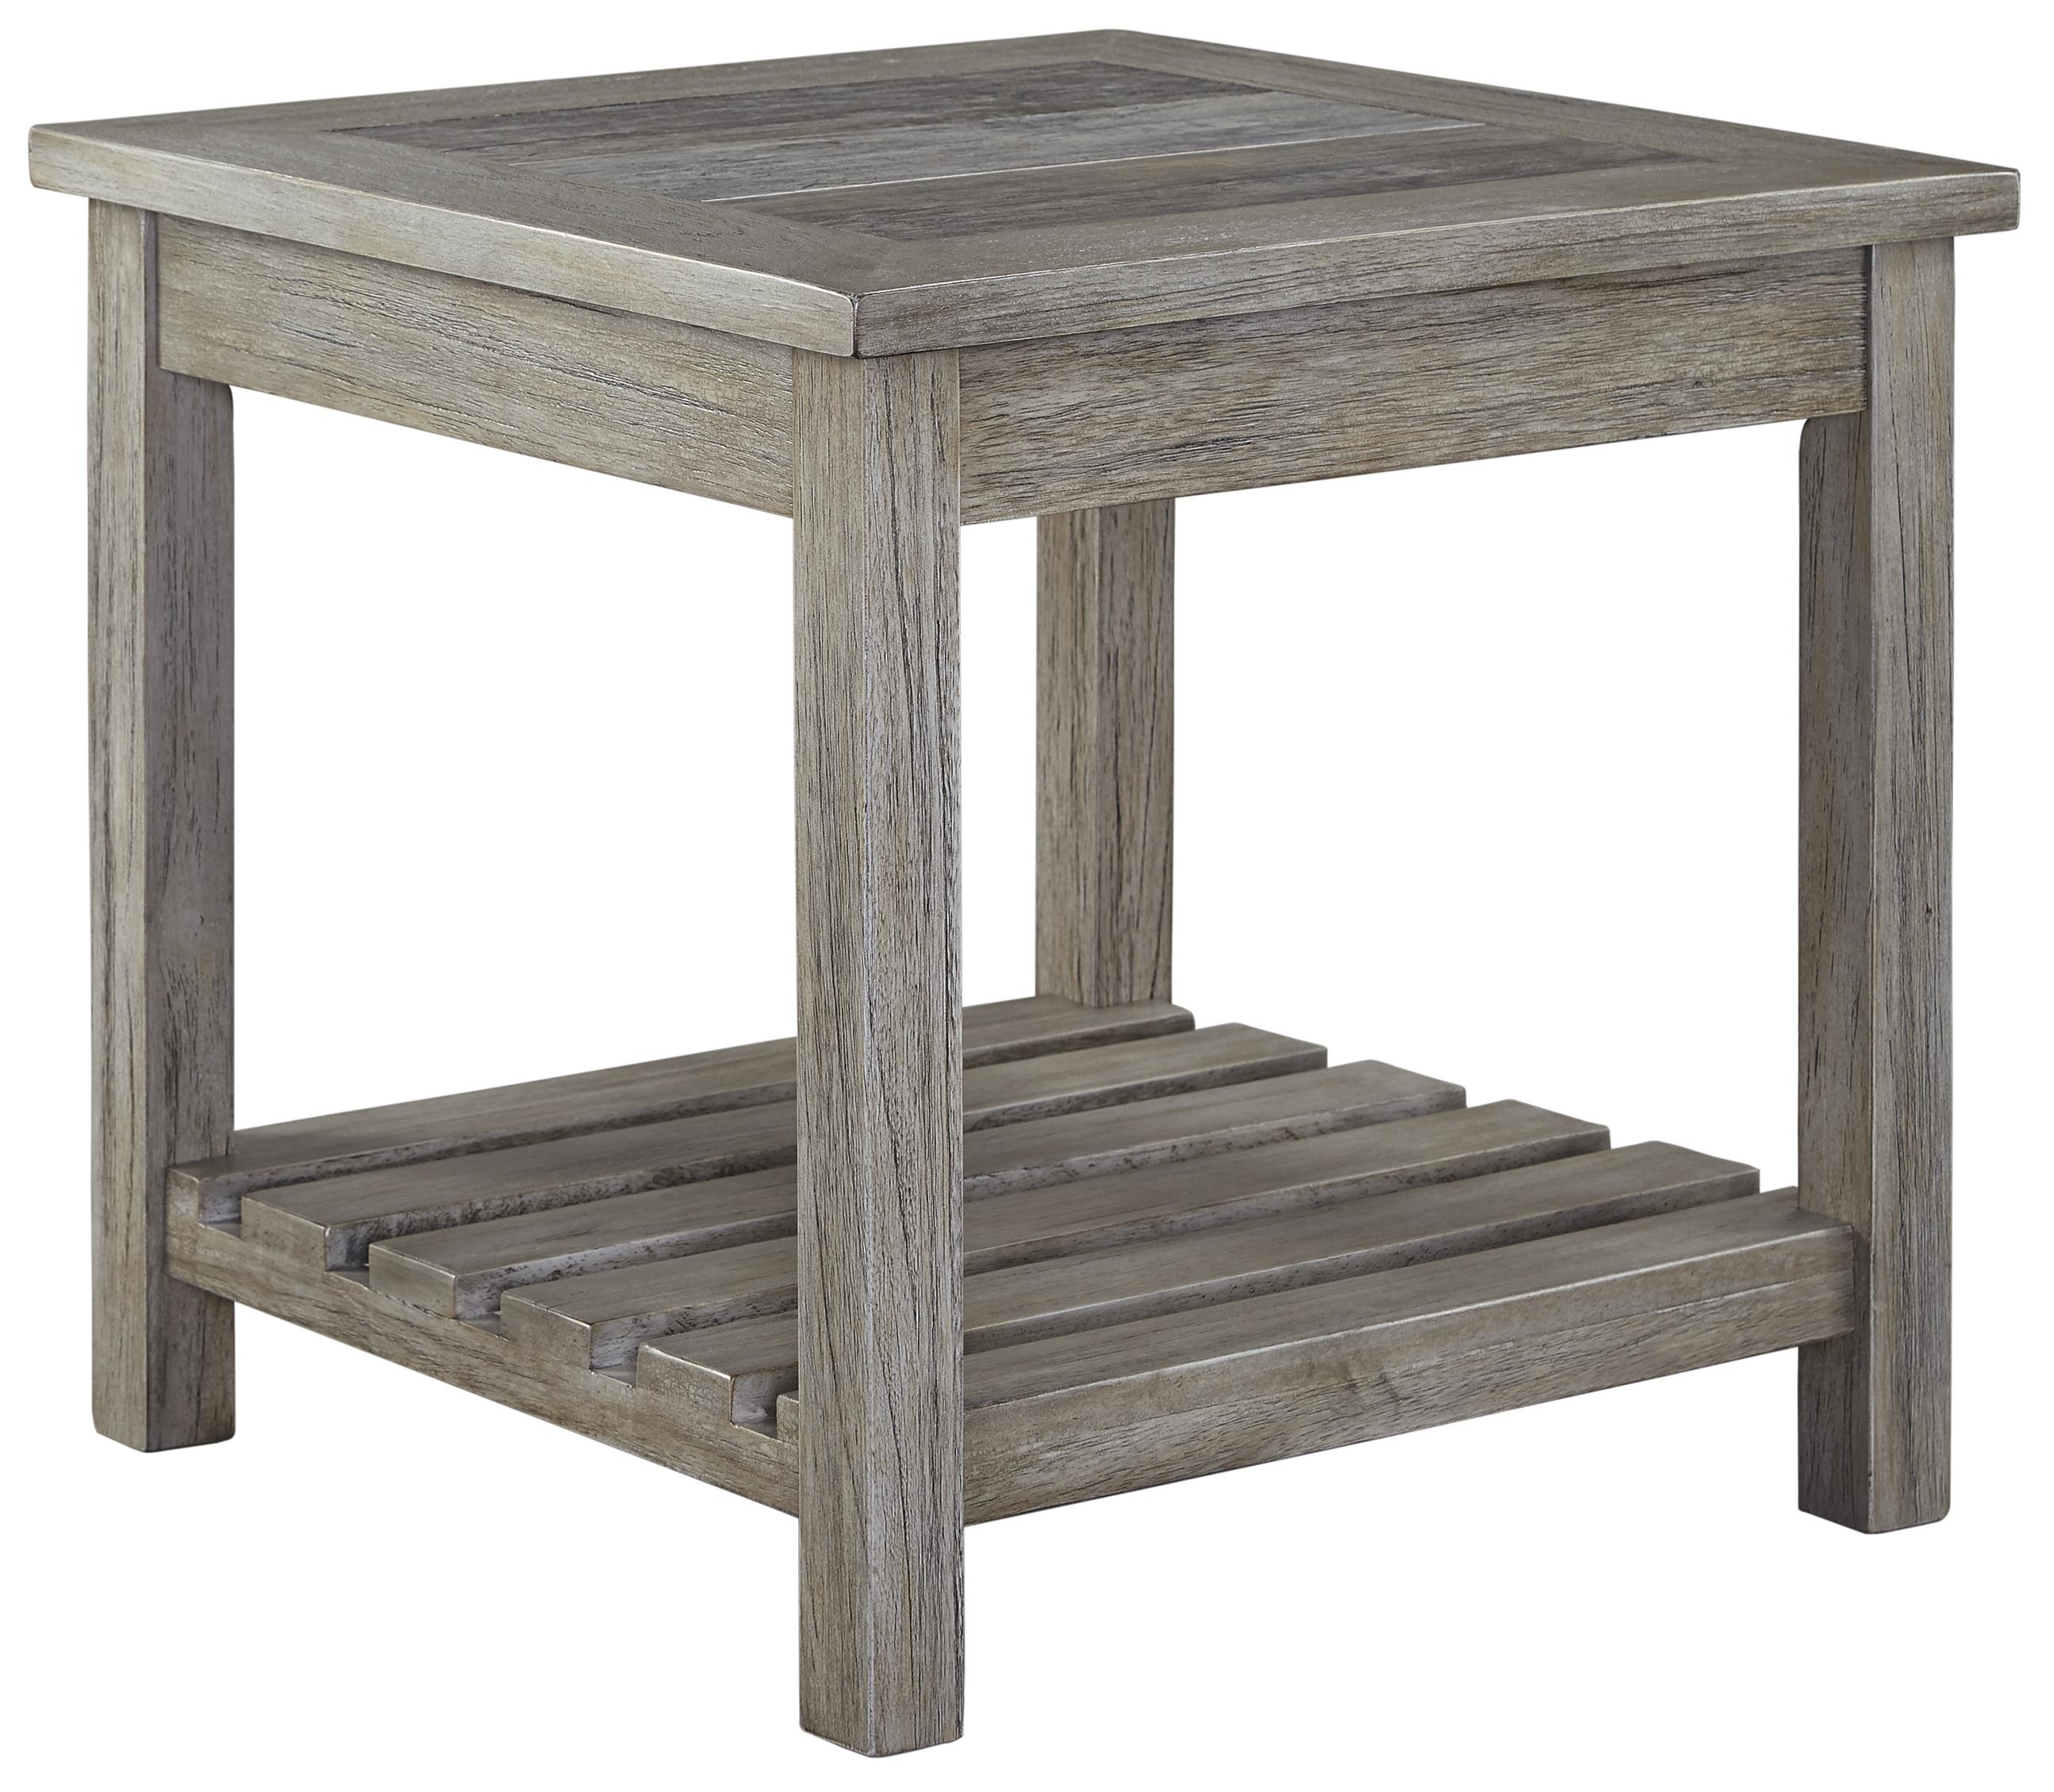 Signature Design by Ashley Veldar Square End Table - Item Number: T748-2